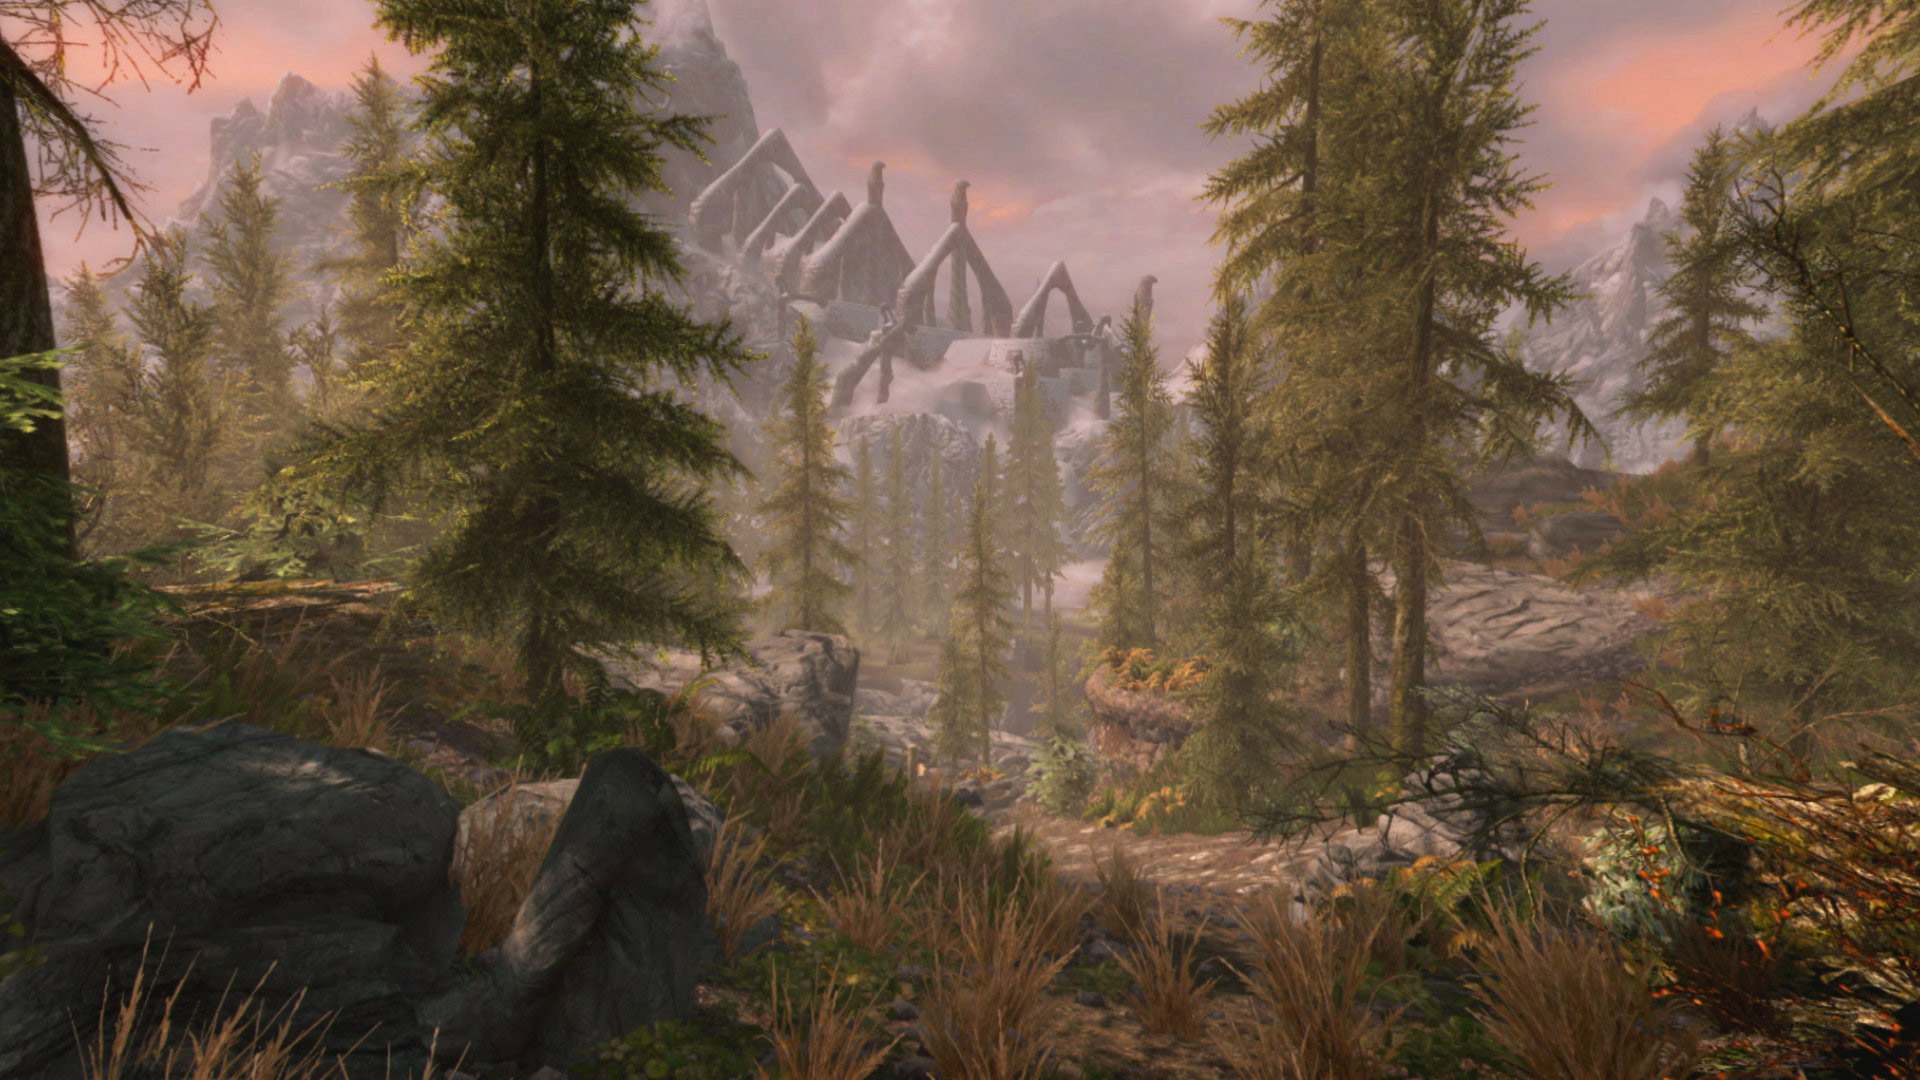 Skyrim VR' for PC (Vive, Rift, & Windows VR) Review – a